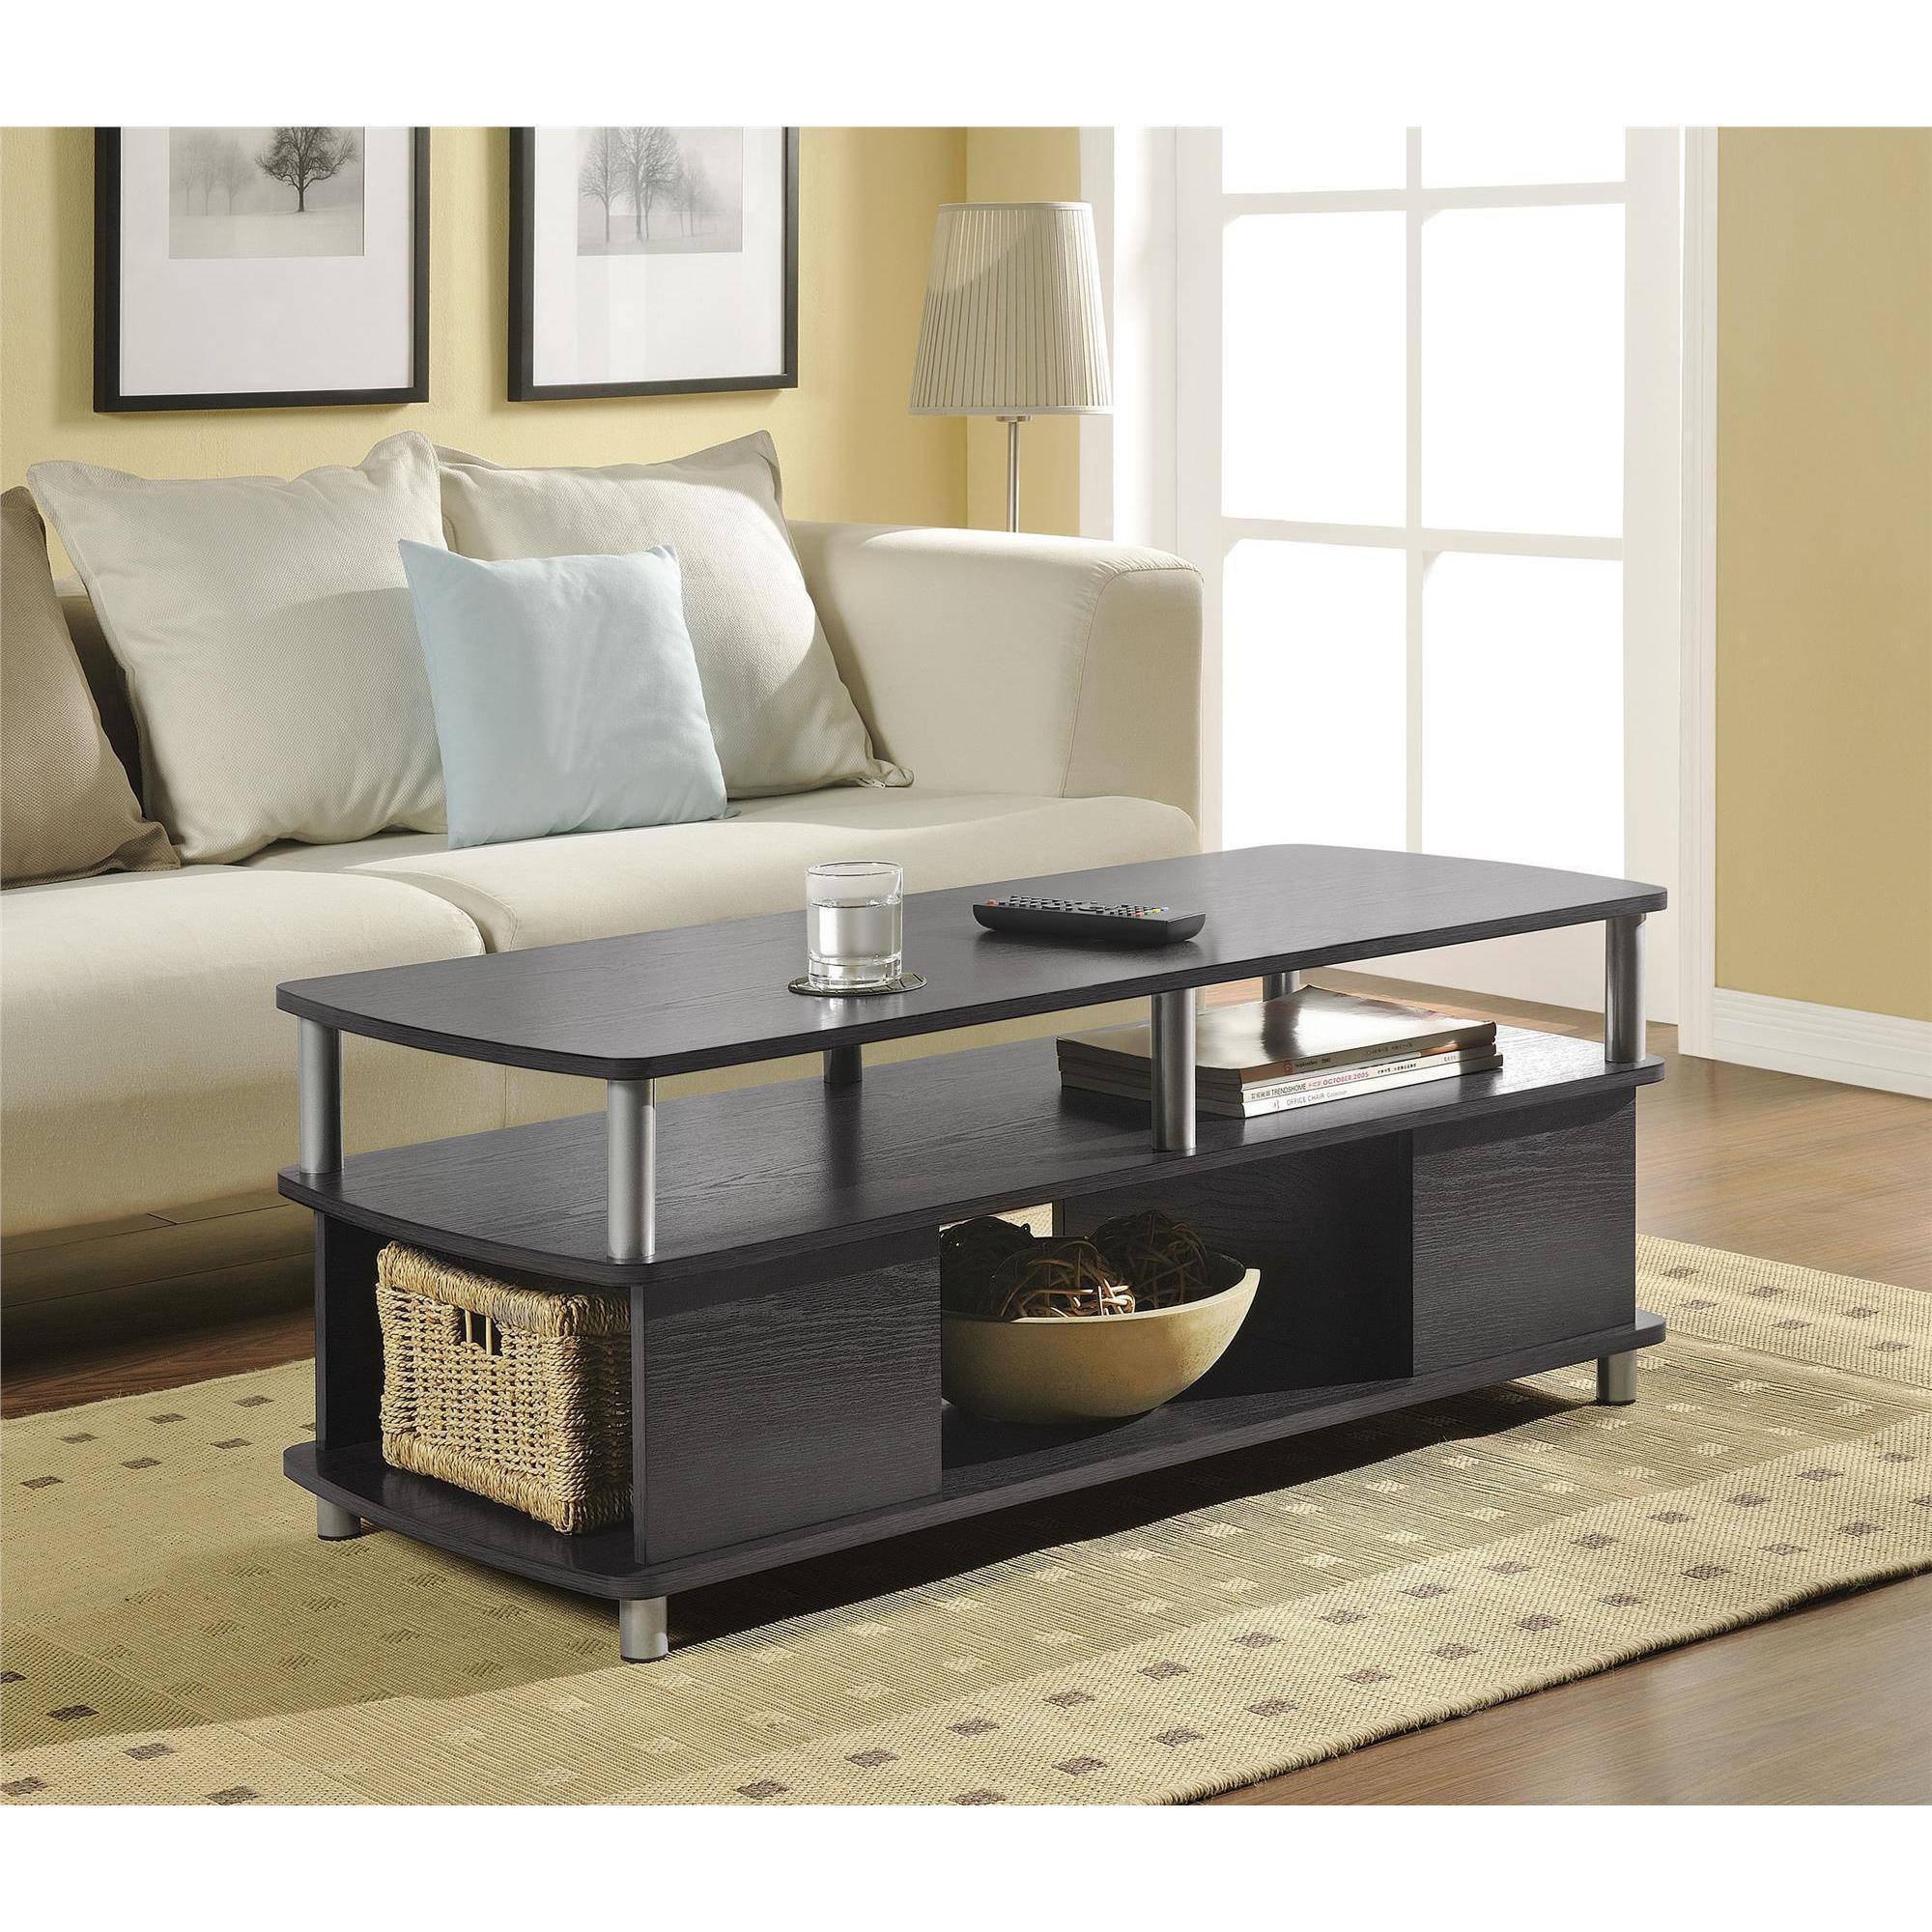 Hodedah Glass Rectangle Coffee Table Black Walmartcom